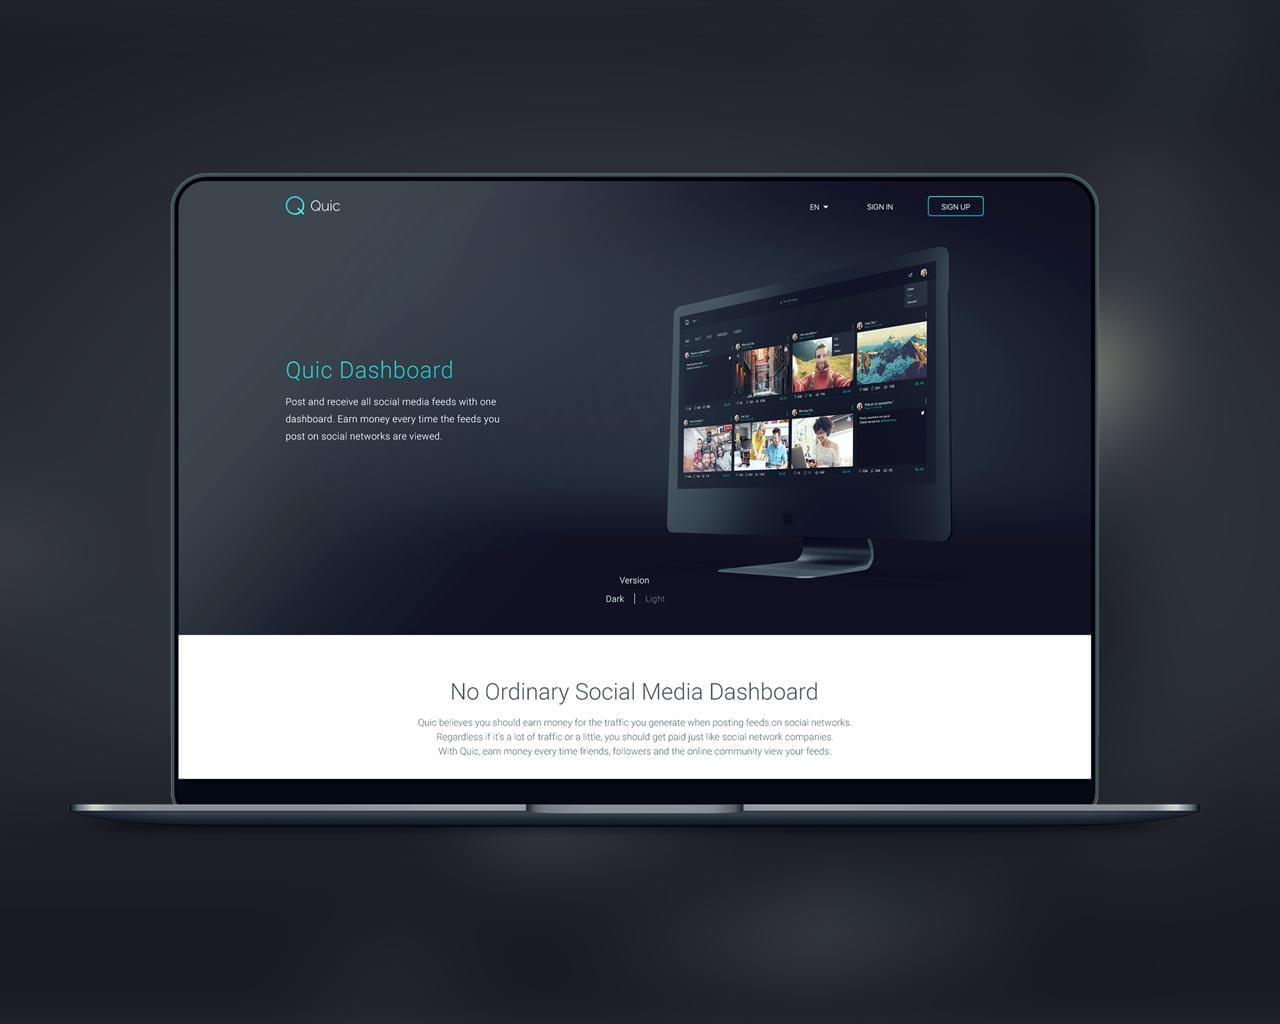 Professional and Creative Web Design PSD by ufsdesign - 112196